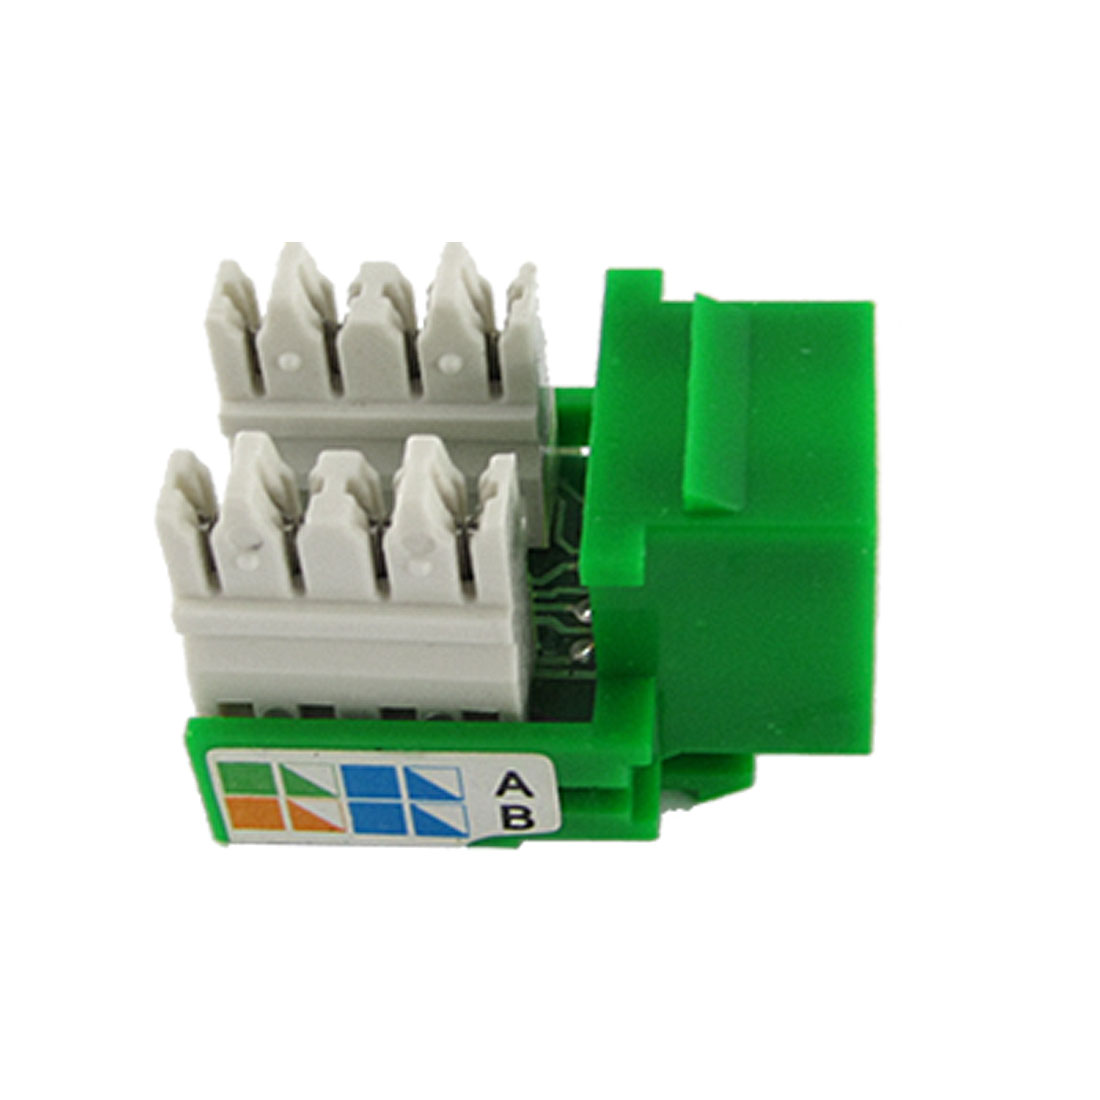 Green LAN Network CAT5e RJ45 Connector Module